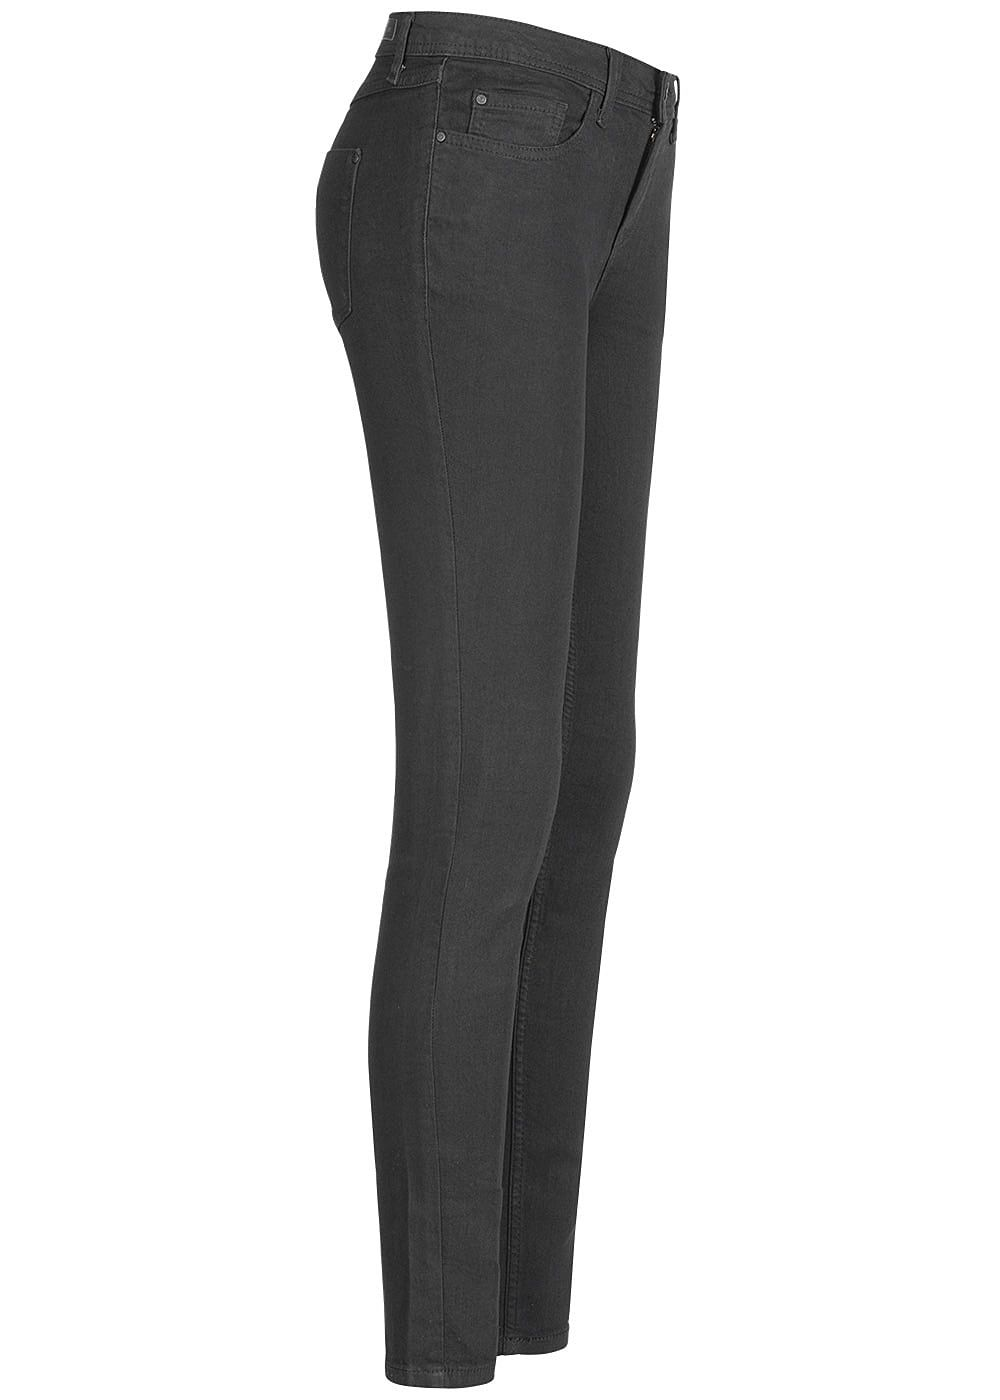 JDY by ONLY Skinny Jeans Hose 5-Pockets NOOS schwarz denim ... fbebfc41d6